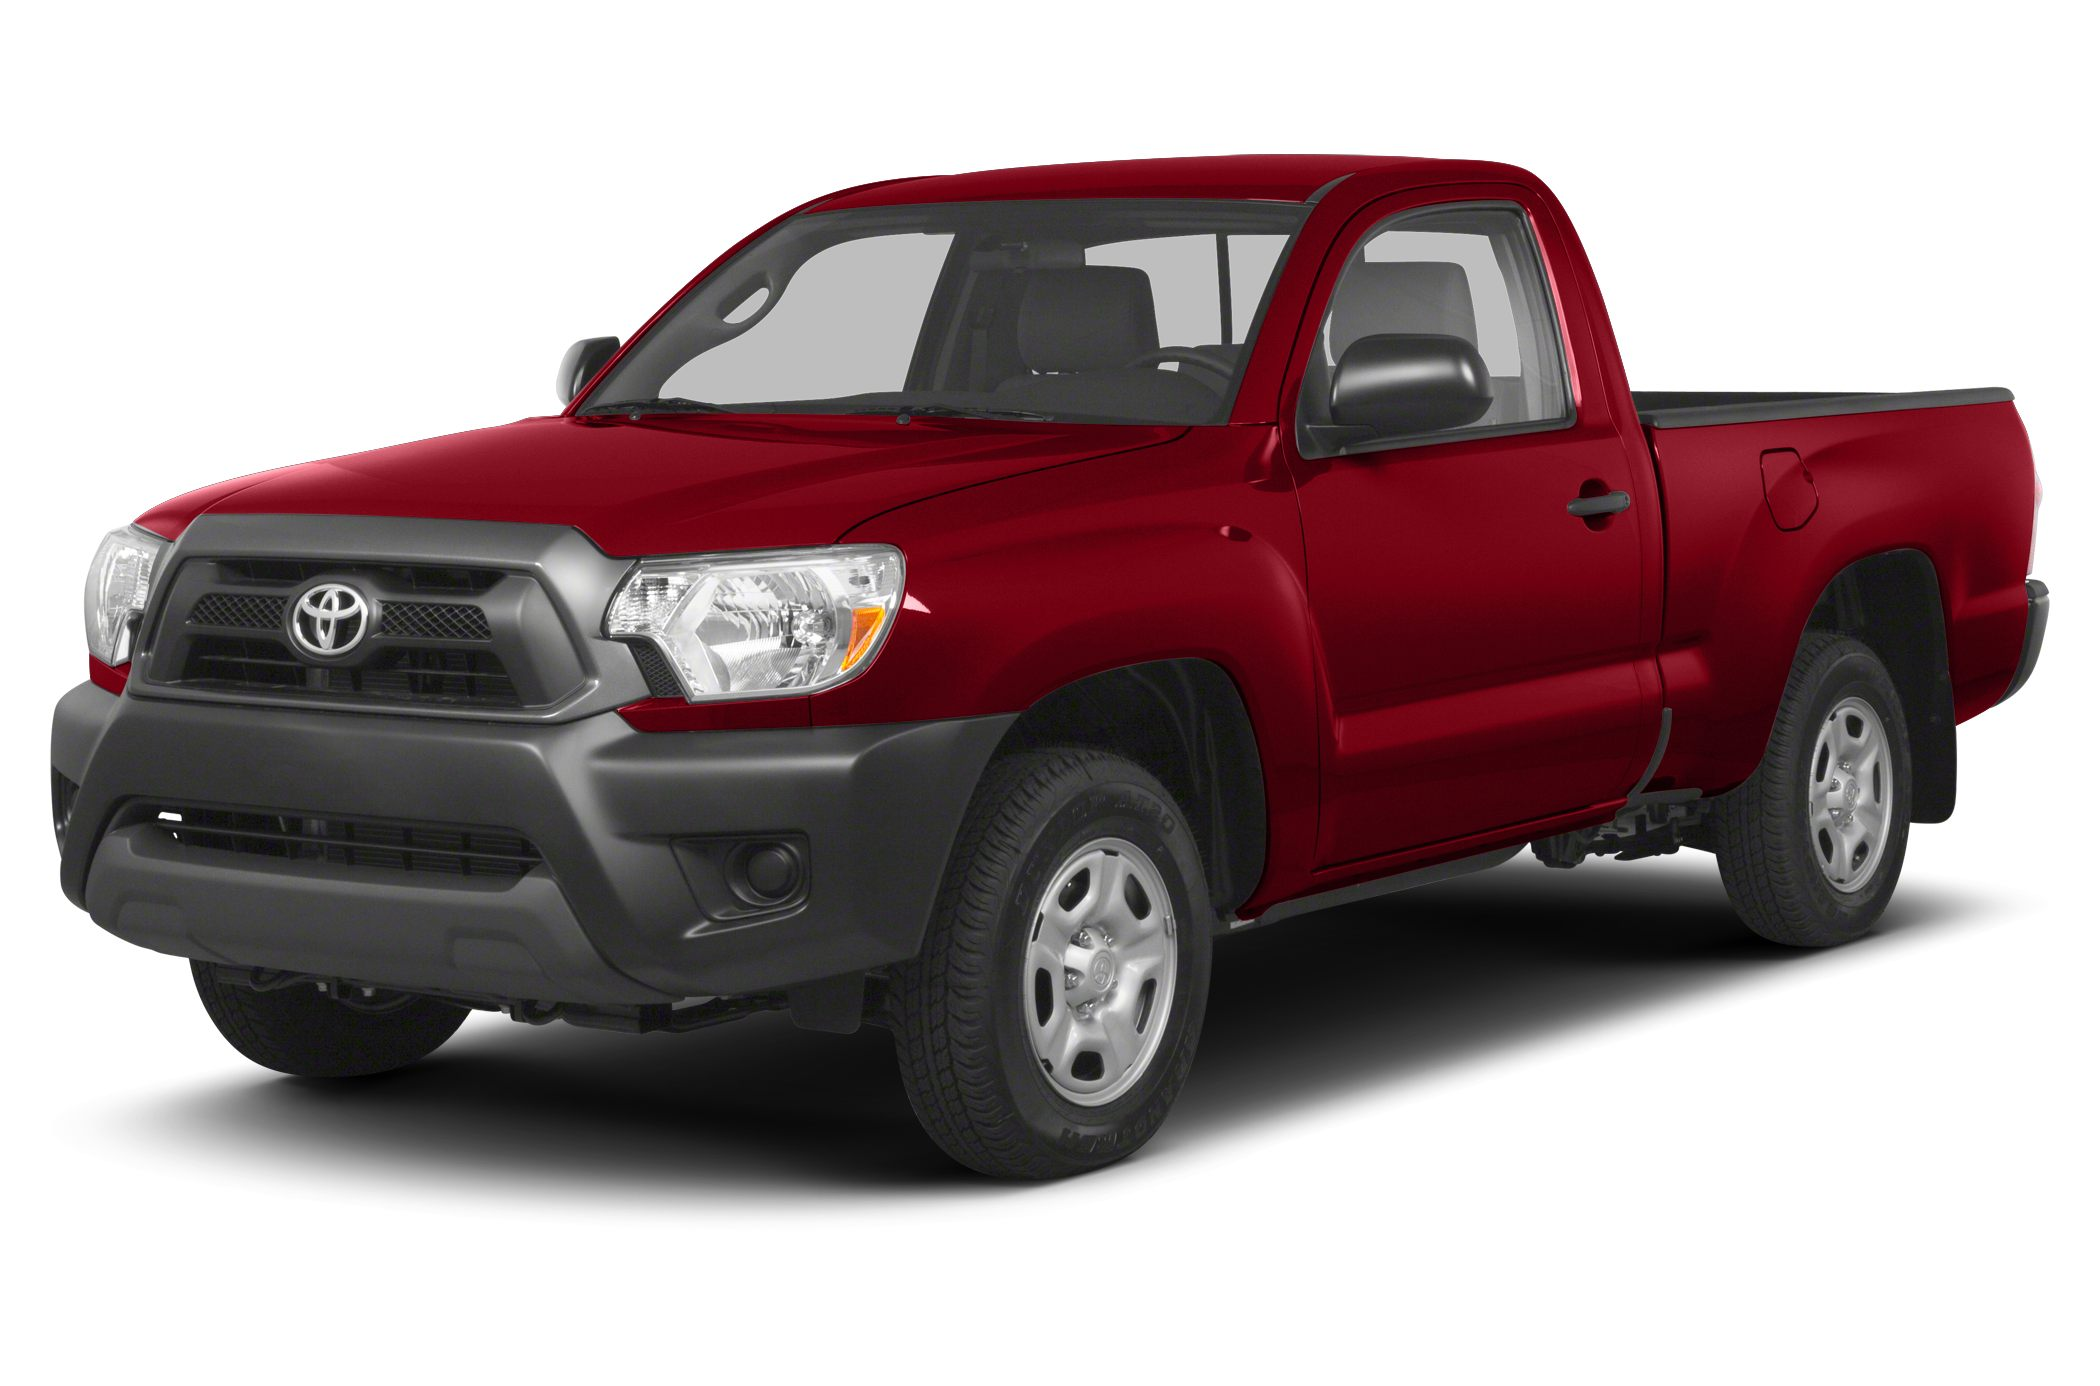 2012 Toyota Tacoma Base This 2012 Toyota Tacoma 2dr 2WD Reg Cab I4 MT features a 27L 4 Cylinder E